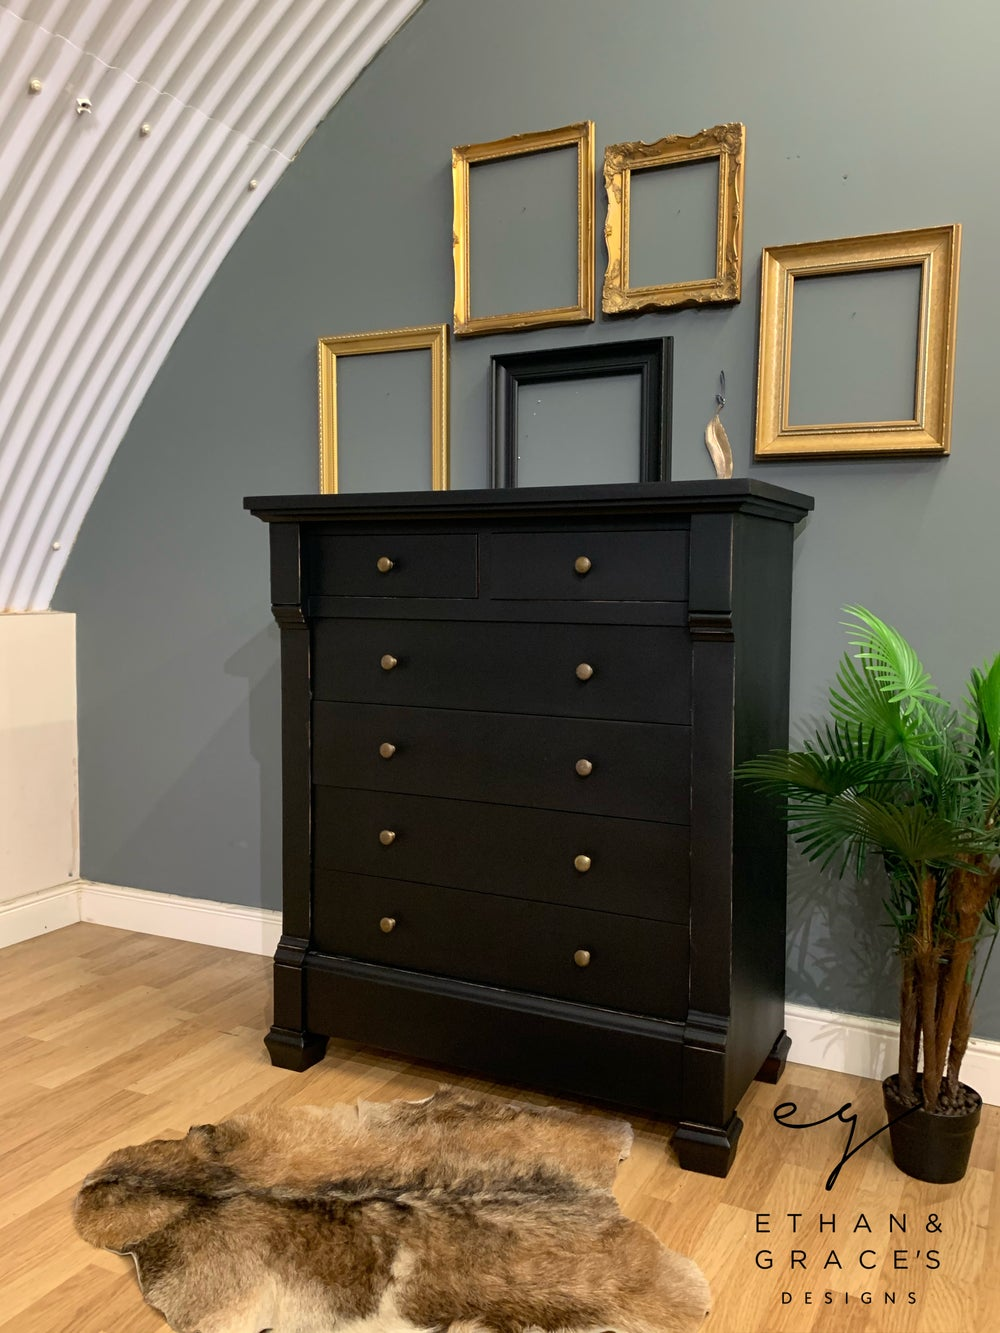 Image of Solid wooden distressed black chest of drawers